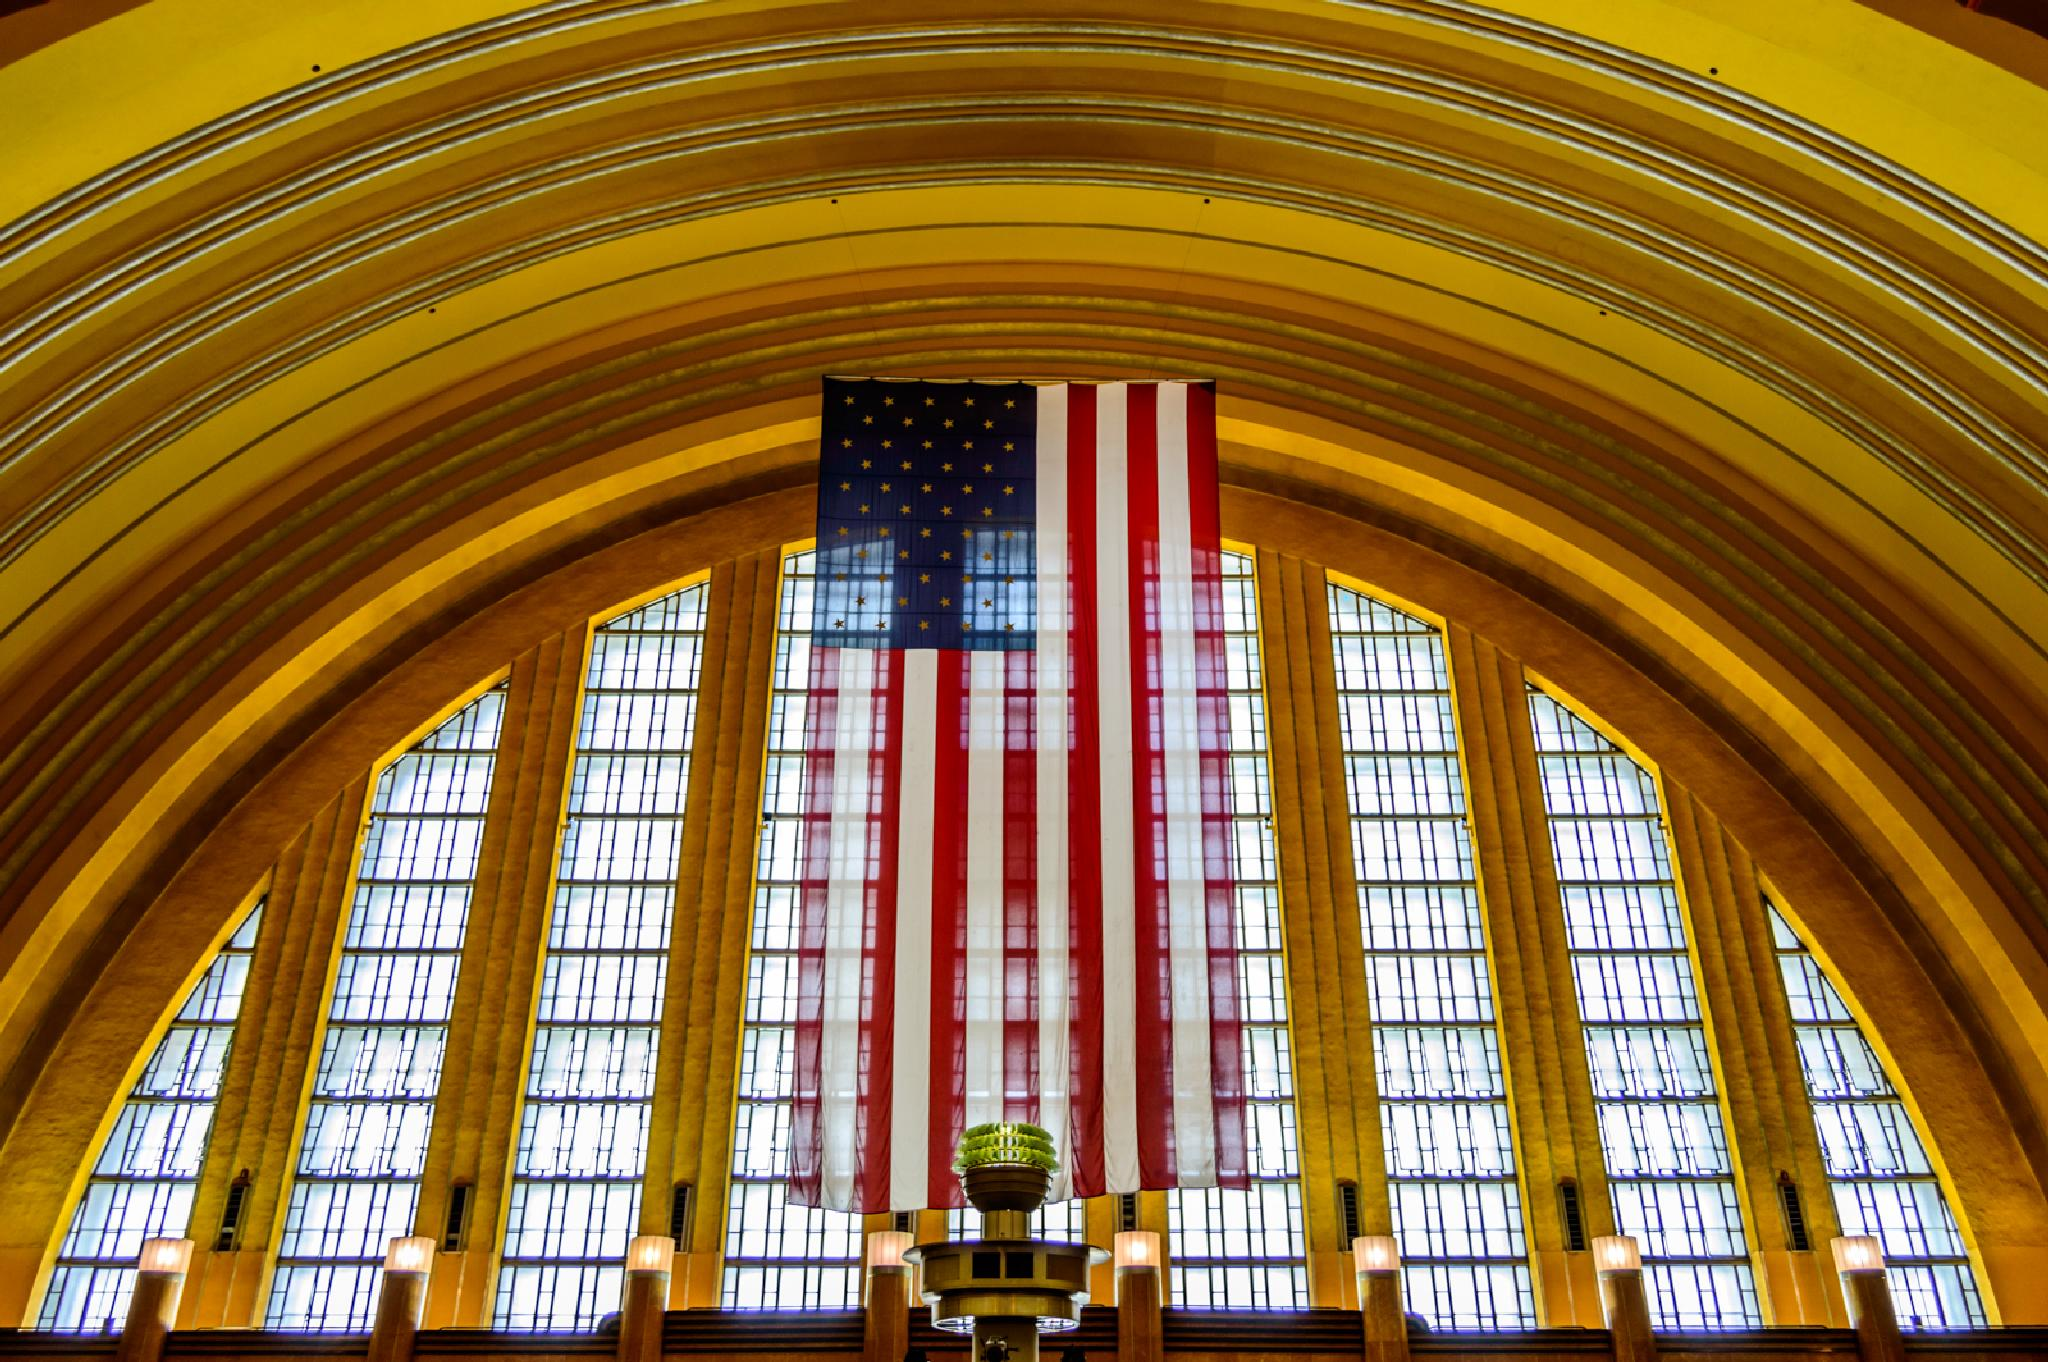 American Flag in the Rotunda by montyspapa